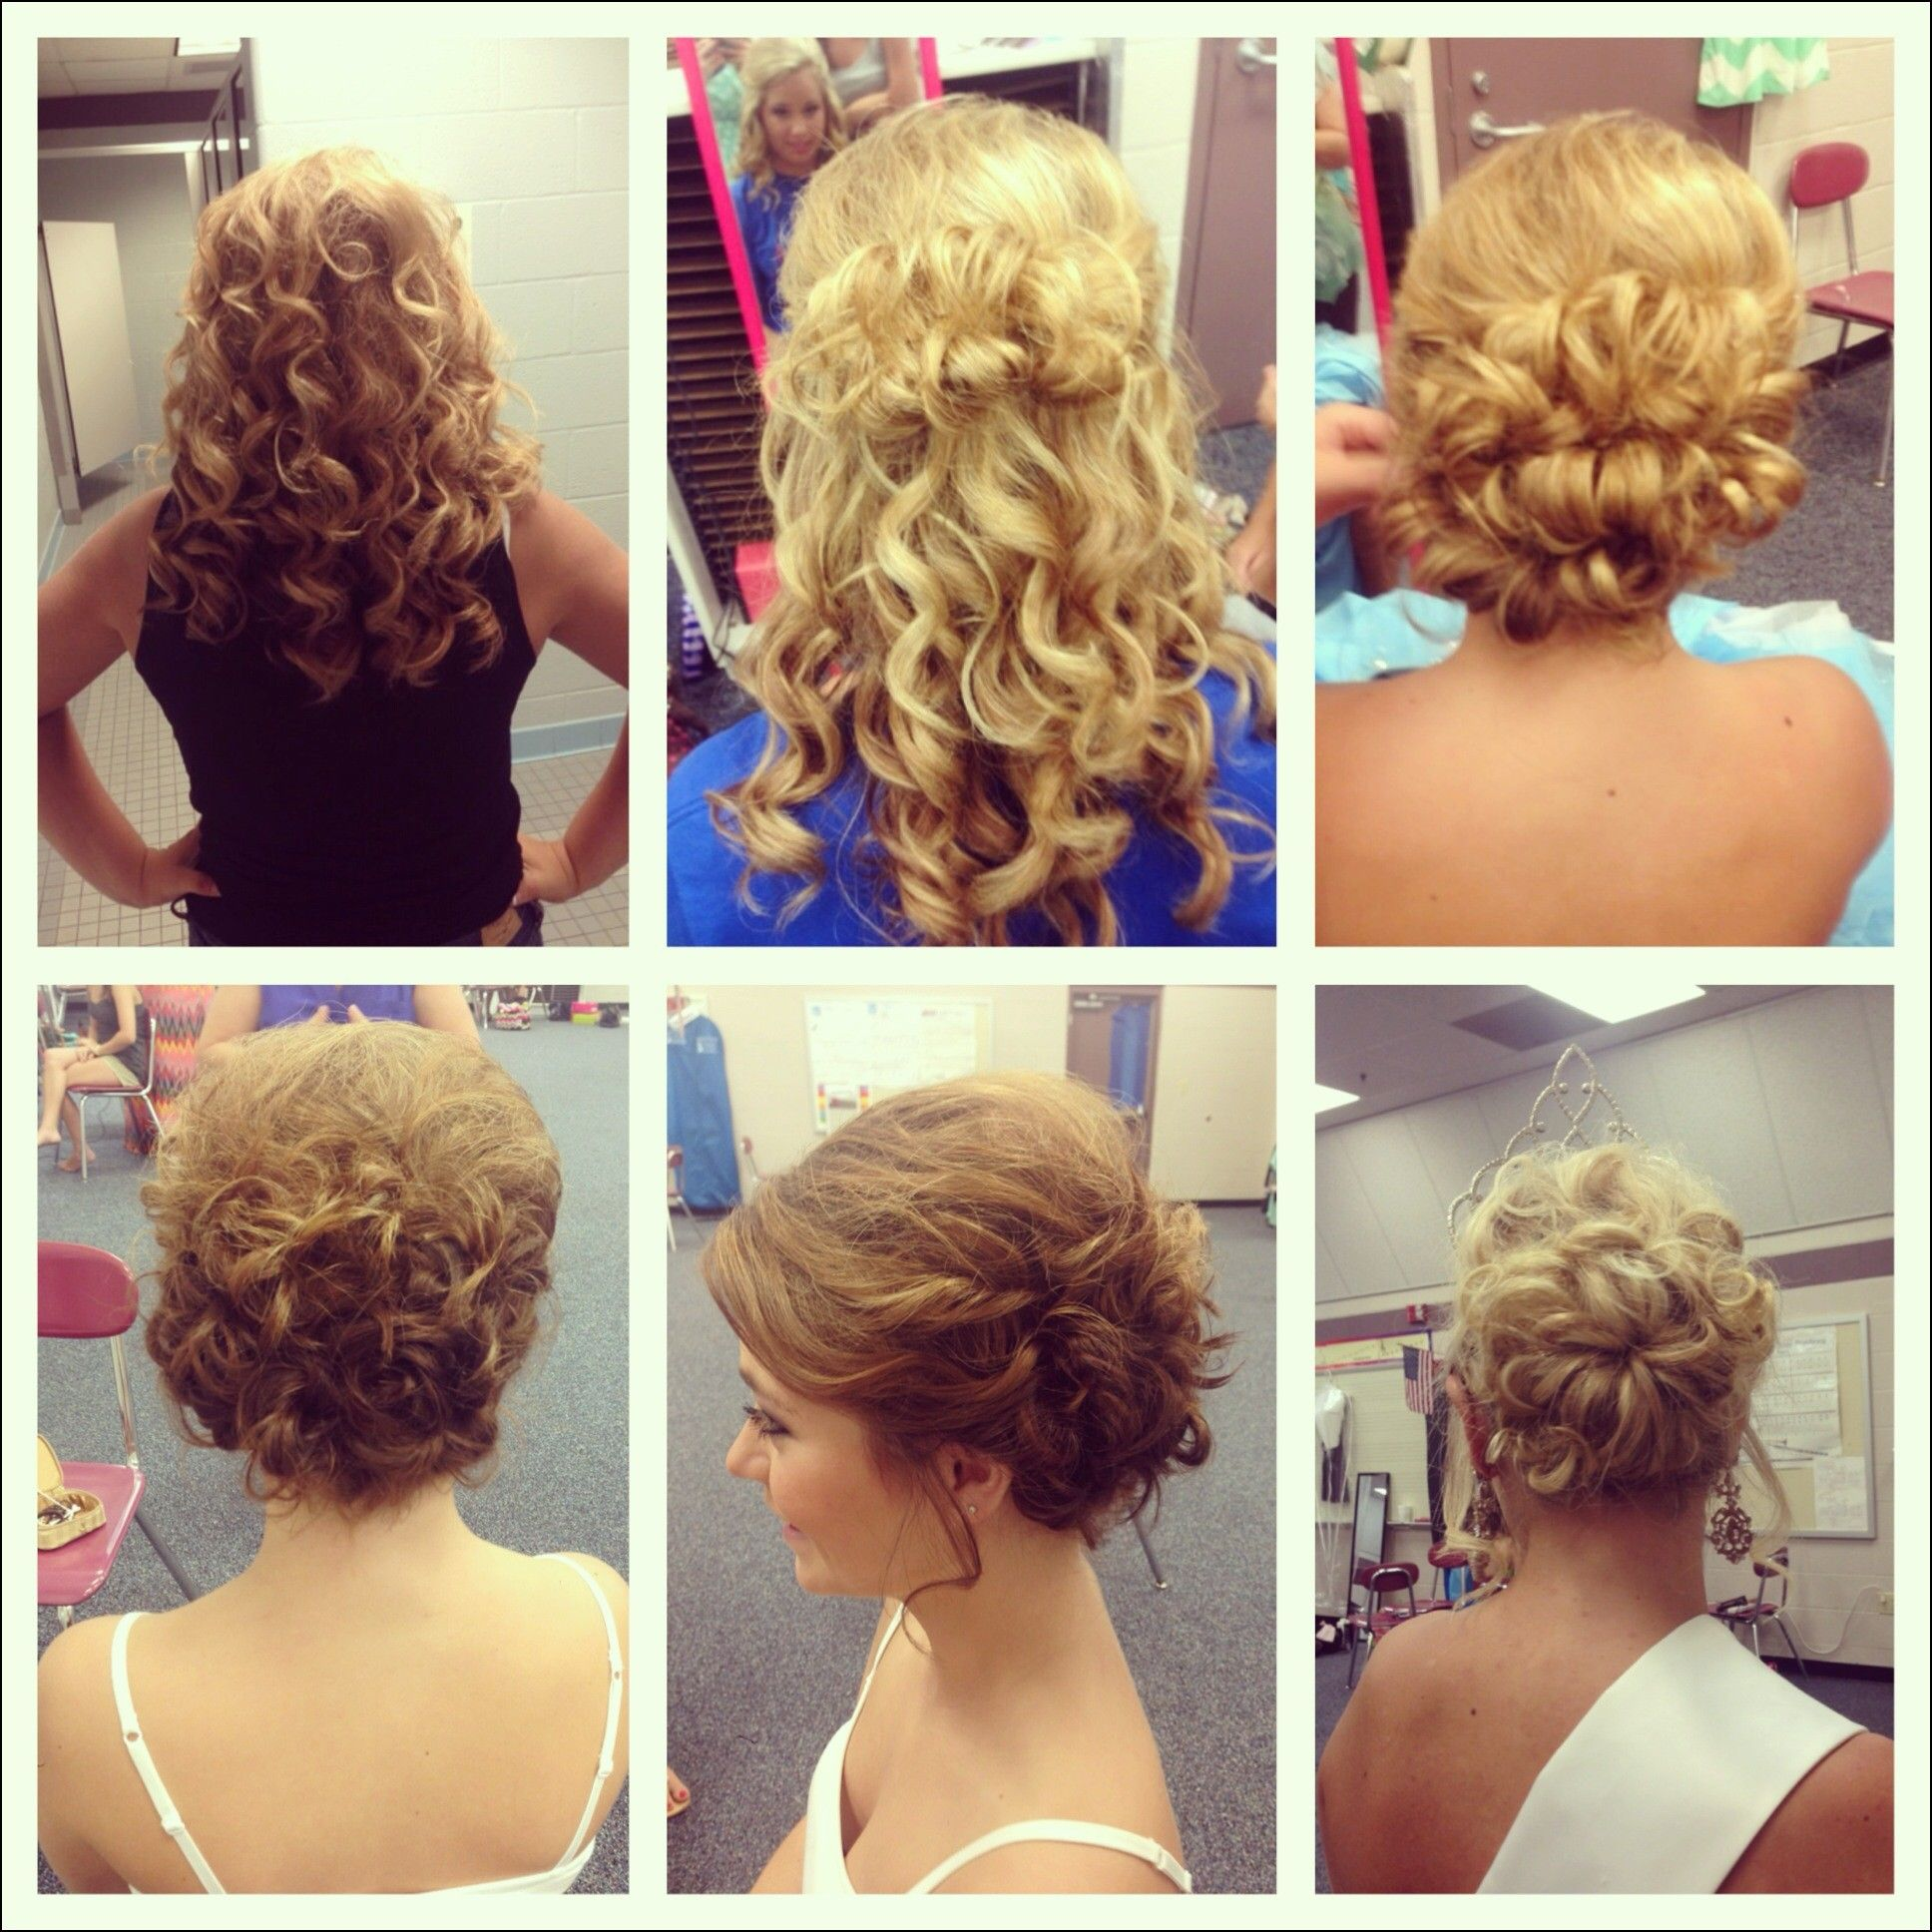 updo hairstyles for pageants | pageant | beauty pageant hair